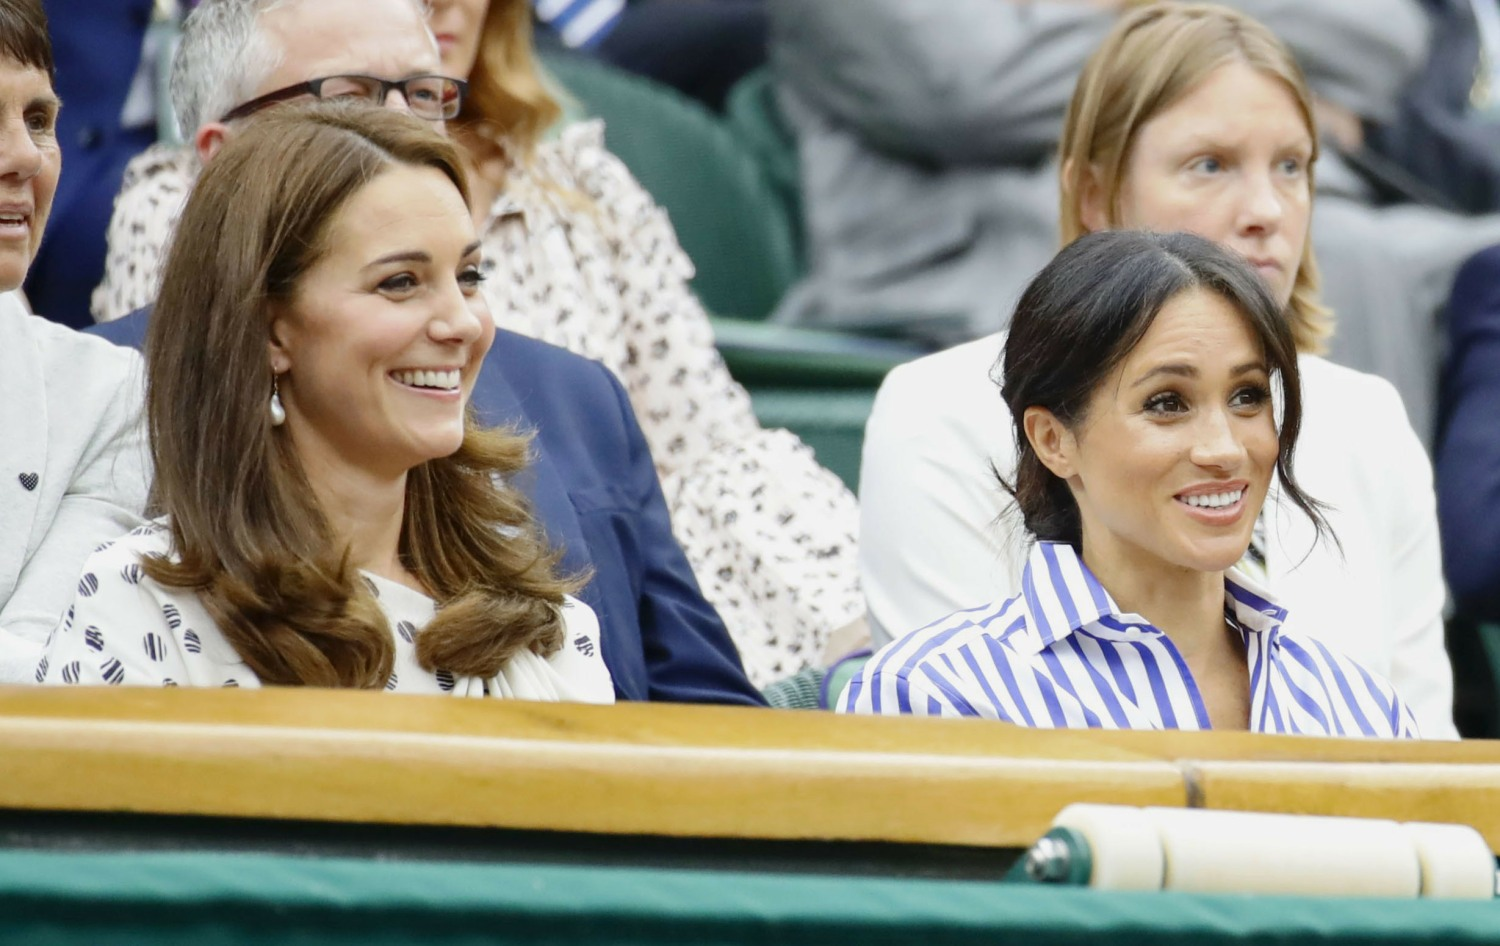 Tennis: British princesses at Wimbledon